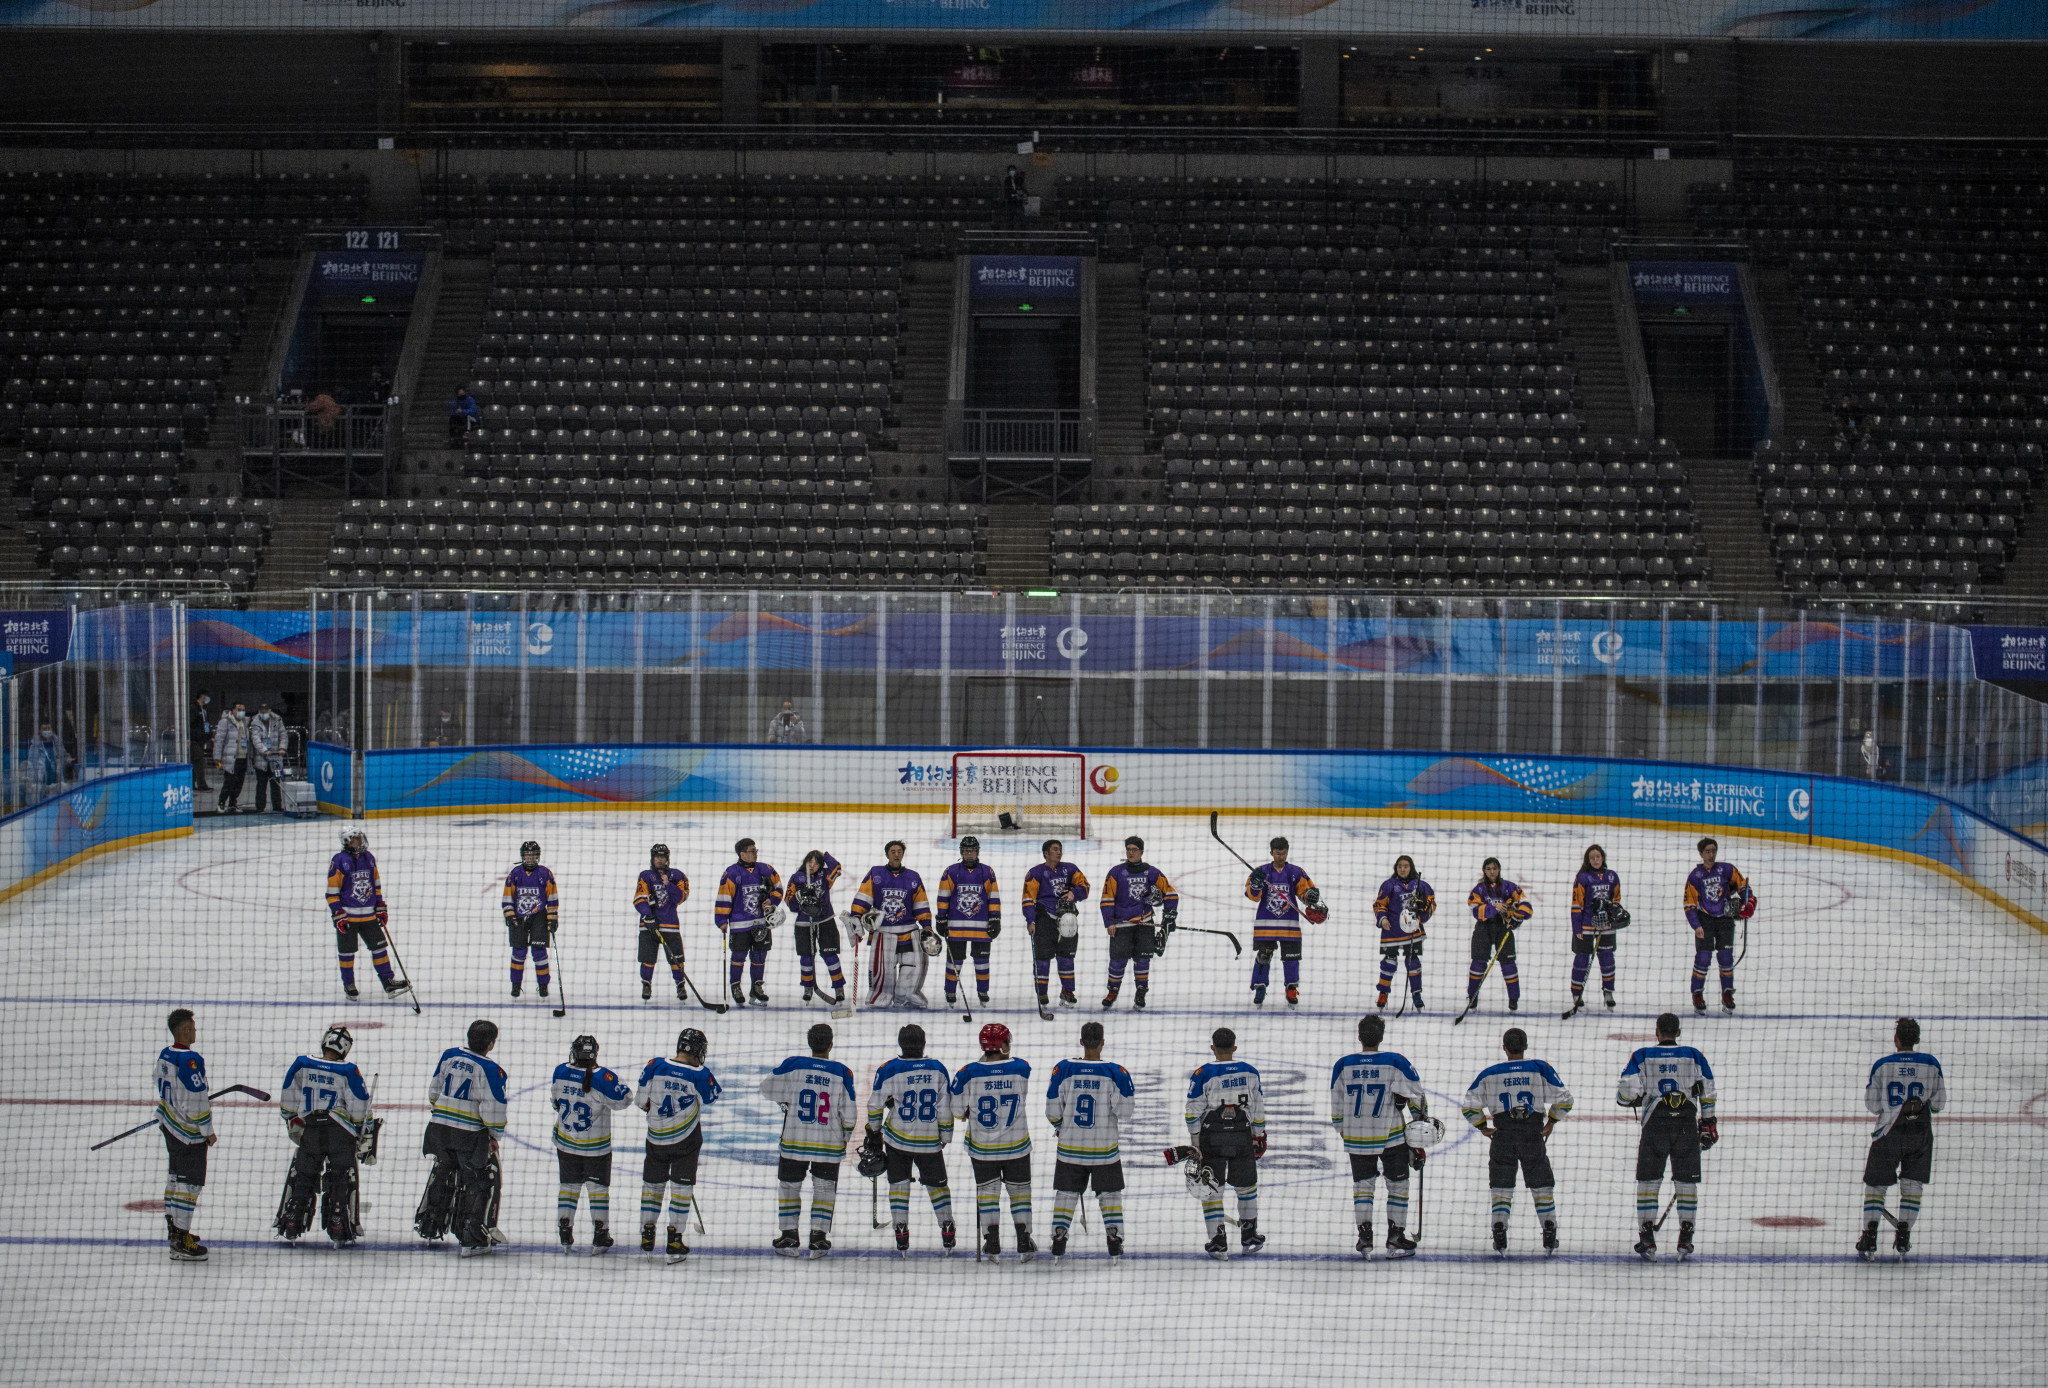 IIHF President René Fasel is anticipating fans being barred from Beijing 2022 ©Getty Images